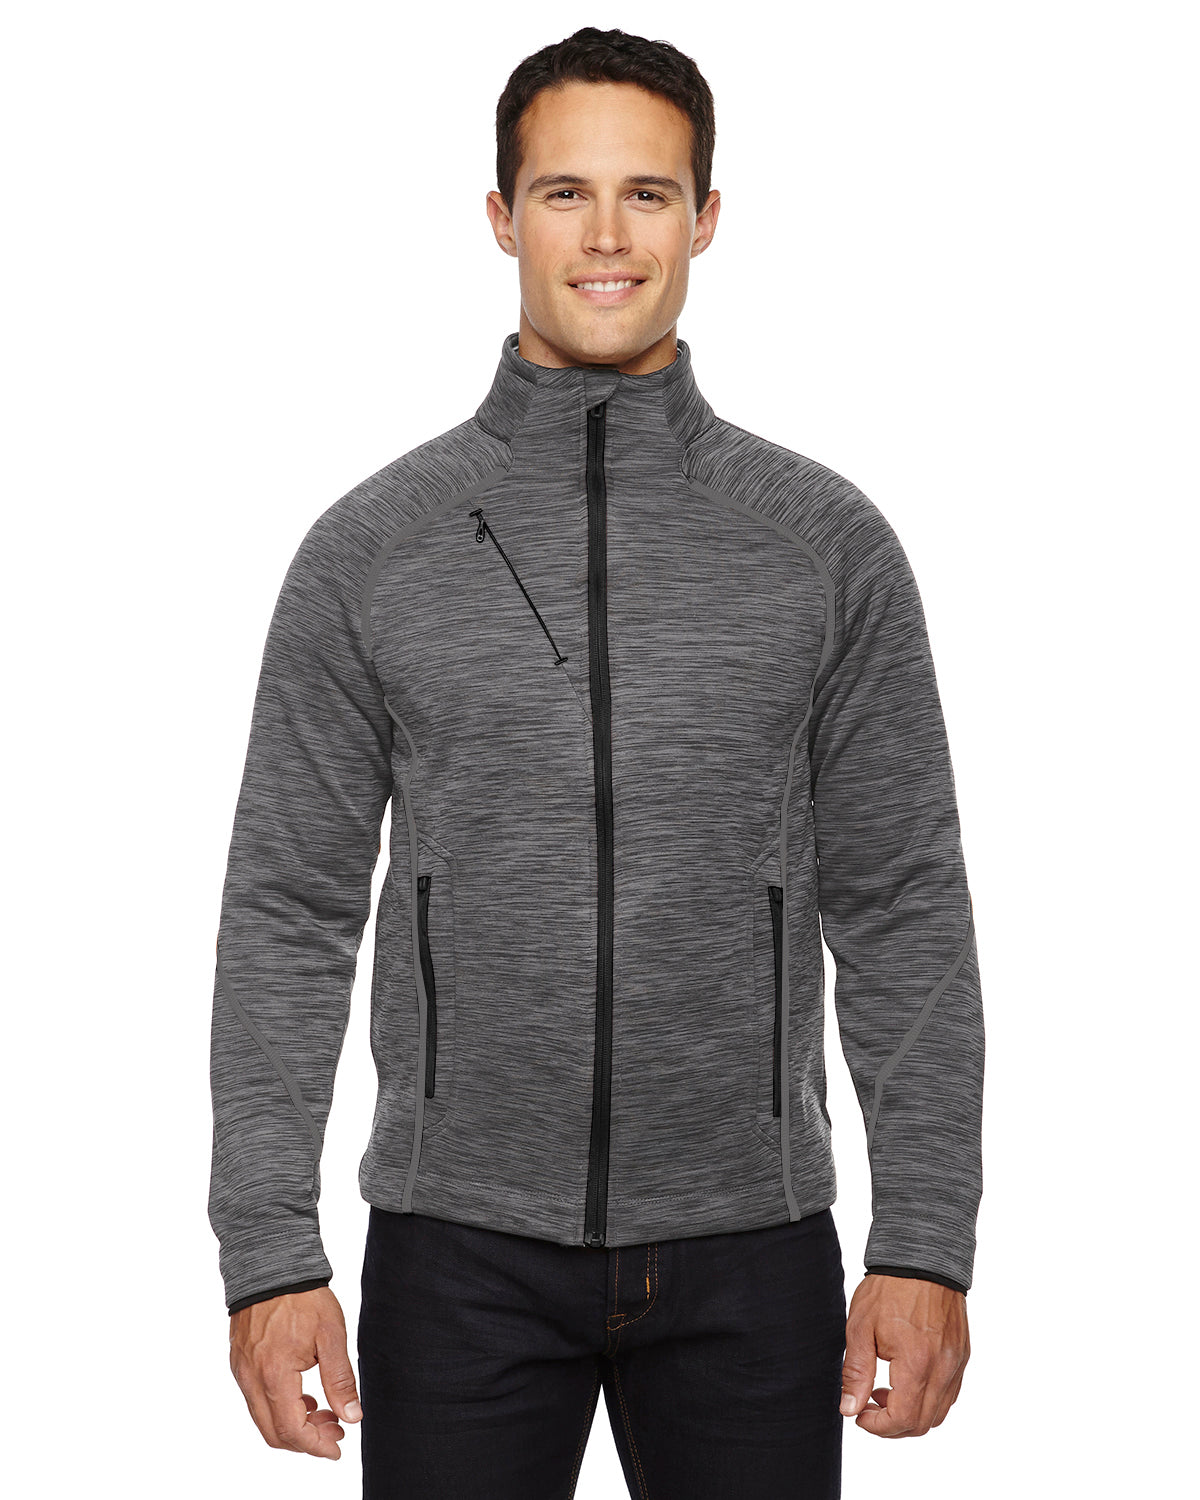 NORTH END MEN'S FLUX MELANGE BONDED FLEECE JACKET